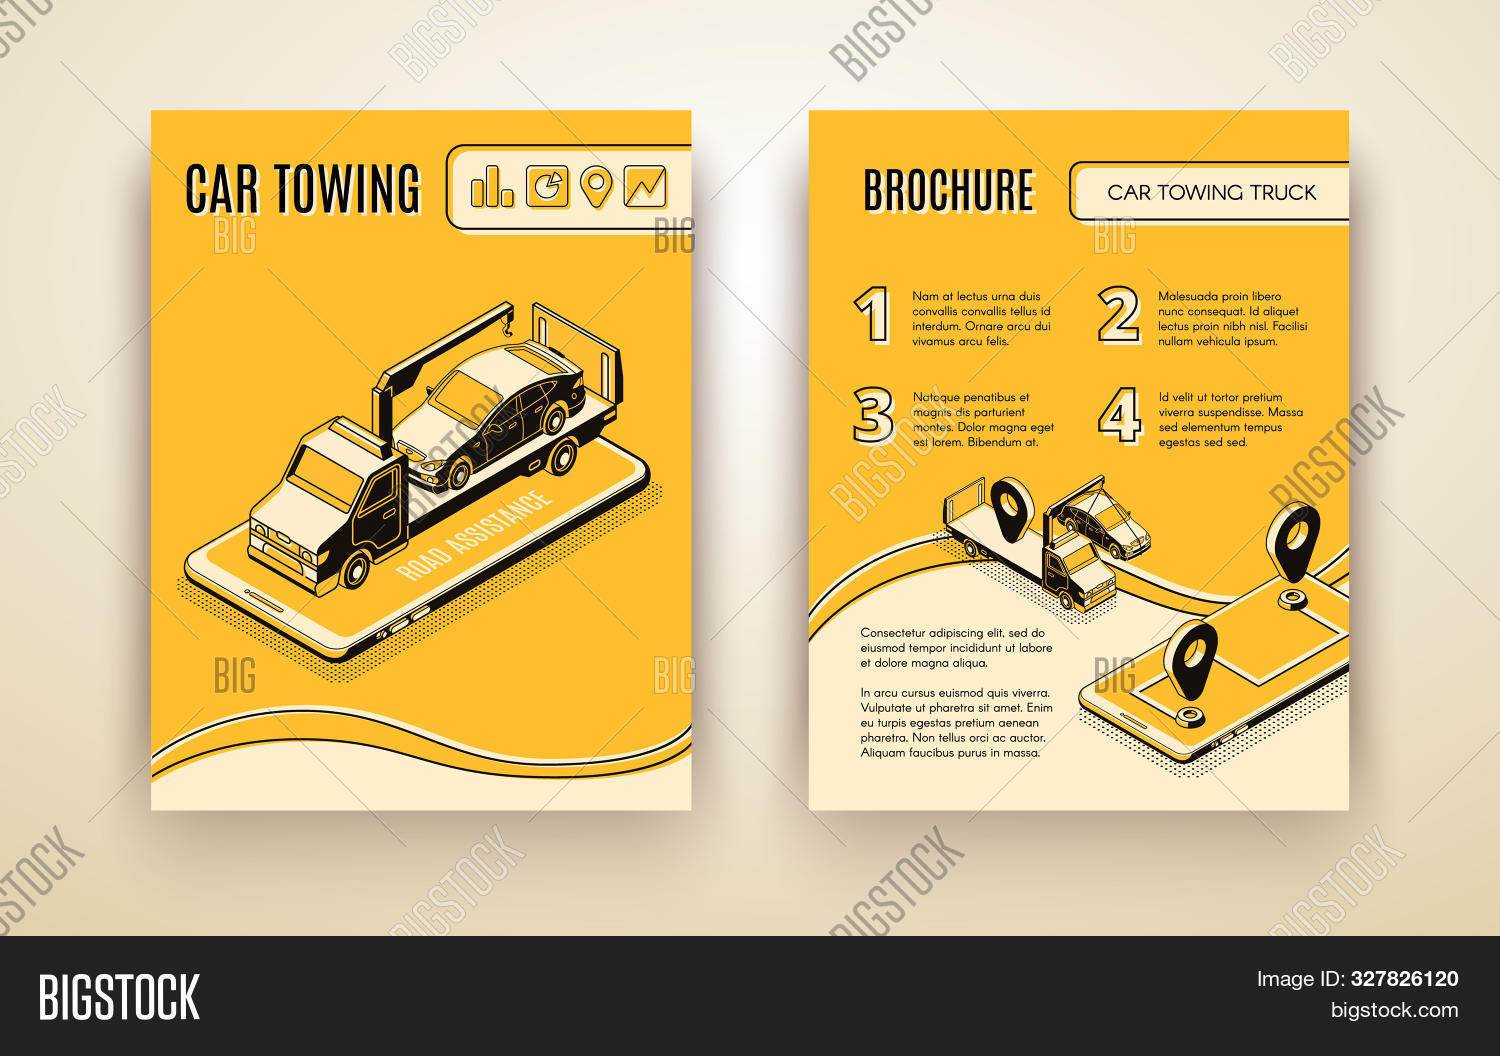 3d,accident,advertising,app,art,assistance,auto,automobile,banner,black,booklet,brochure,broken,car,carry,cellphone,company,concept,crane,design,evacuation,flyer,help,illustration,isometric,layout,leaflet,line,lorry,mobile,online,page,phone,poster,promotion,repair,road,service,sheet,smartphone,tag,template,tow,tracking,transport,transportation,truck,vehicle,yellow